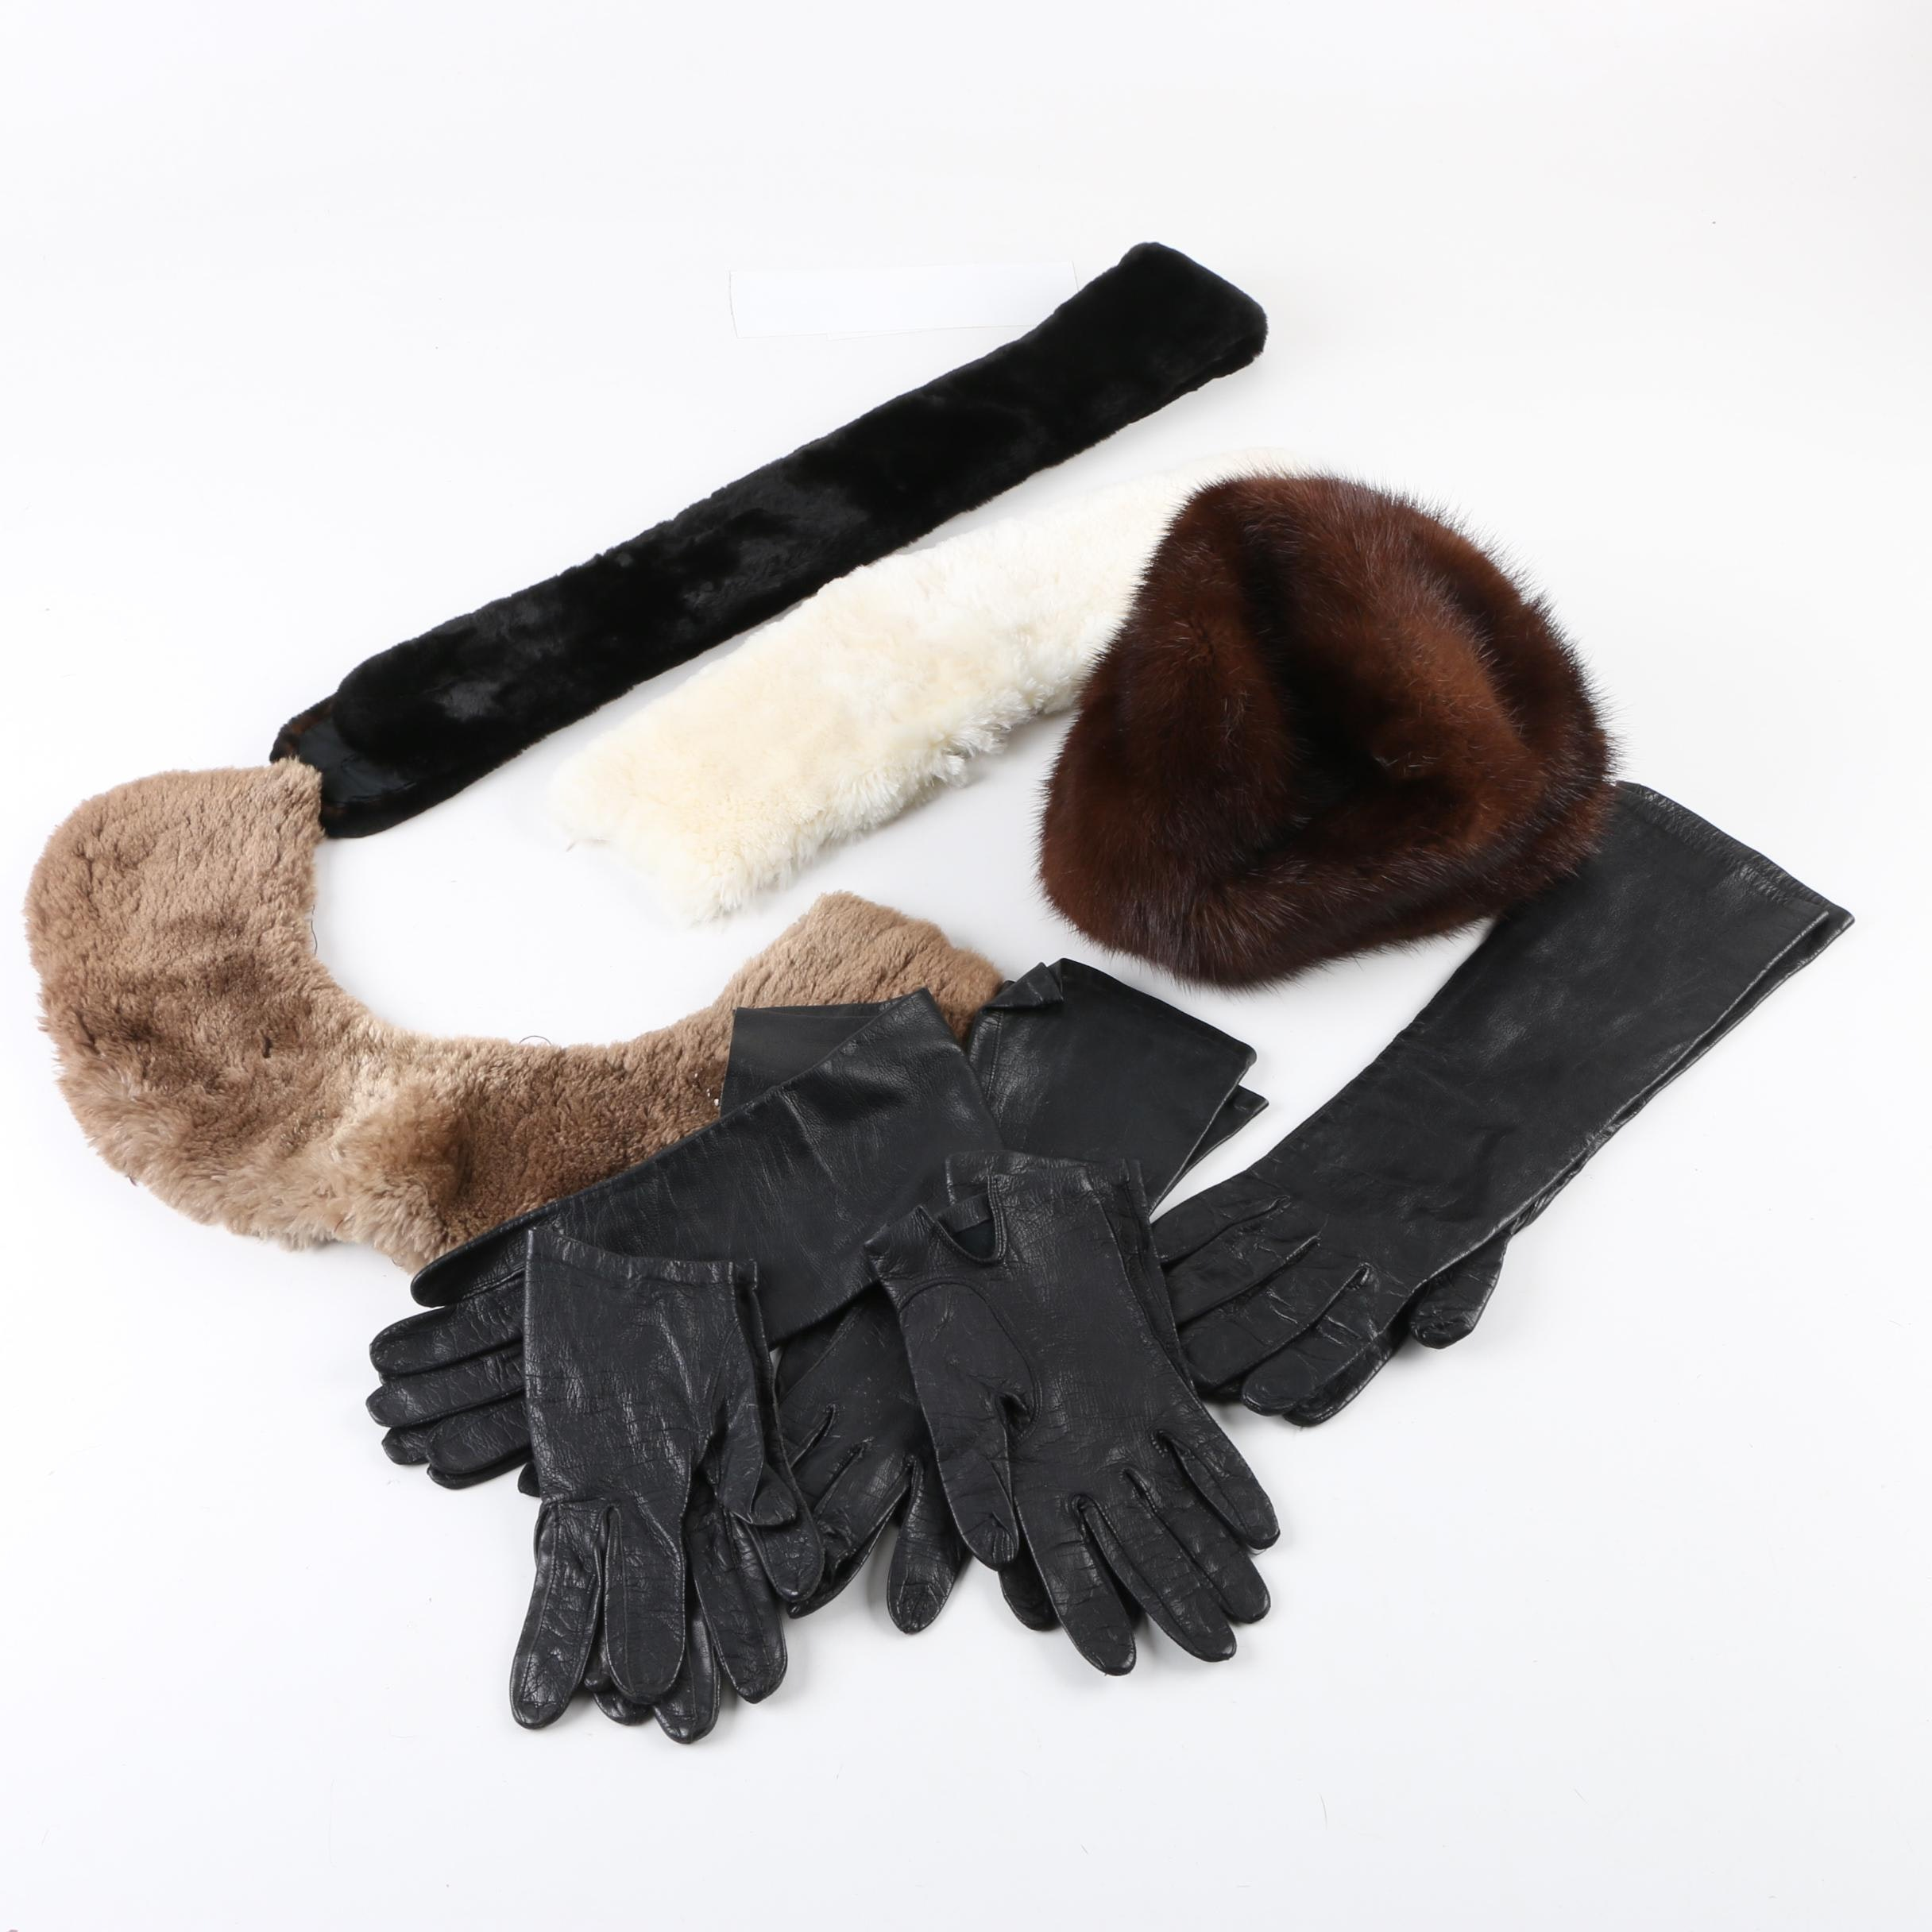 Beaver and Mink Fur Accessories and Five Pairs of Black Leather Gloves